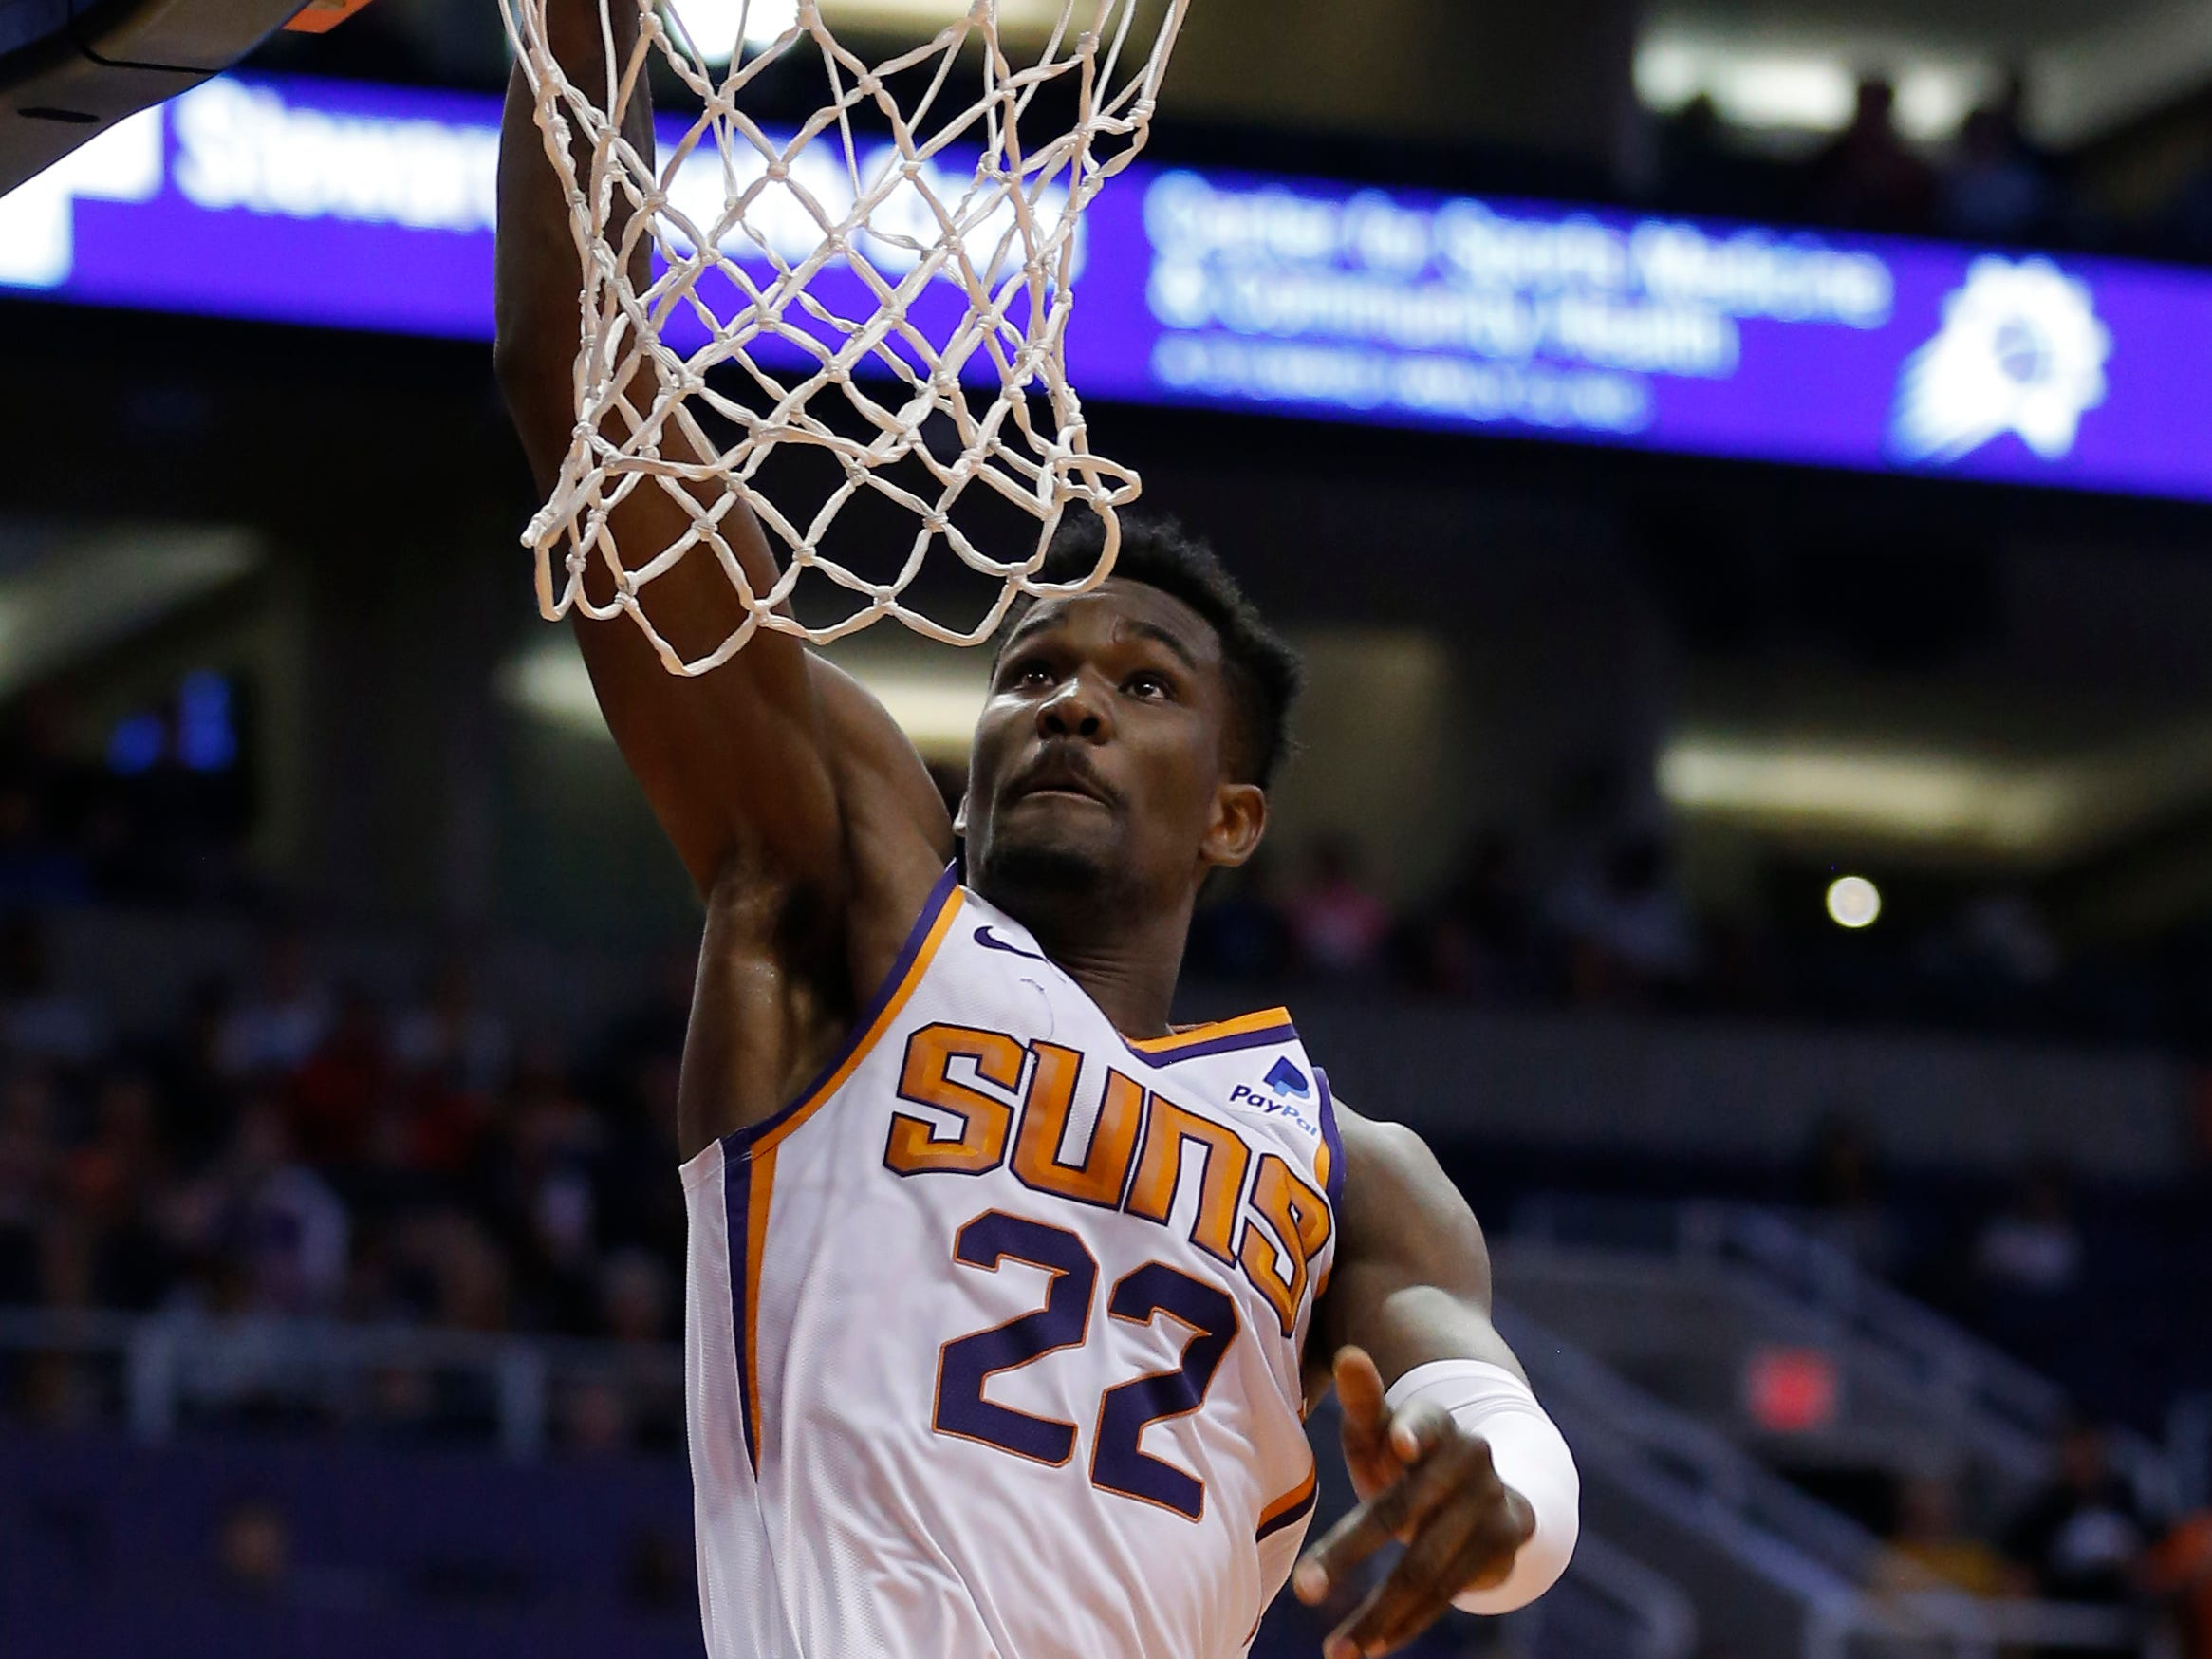 Mar 21, 2019; Phoenix, AZ, USA; Phoenix Suns center Deandre Ayton (22) scores against the Detroit Pistons in the first half during an NBA basketball game at Talking Stick Resort Arena.